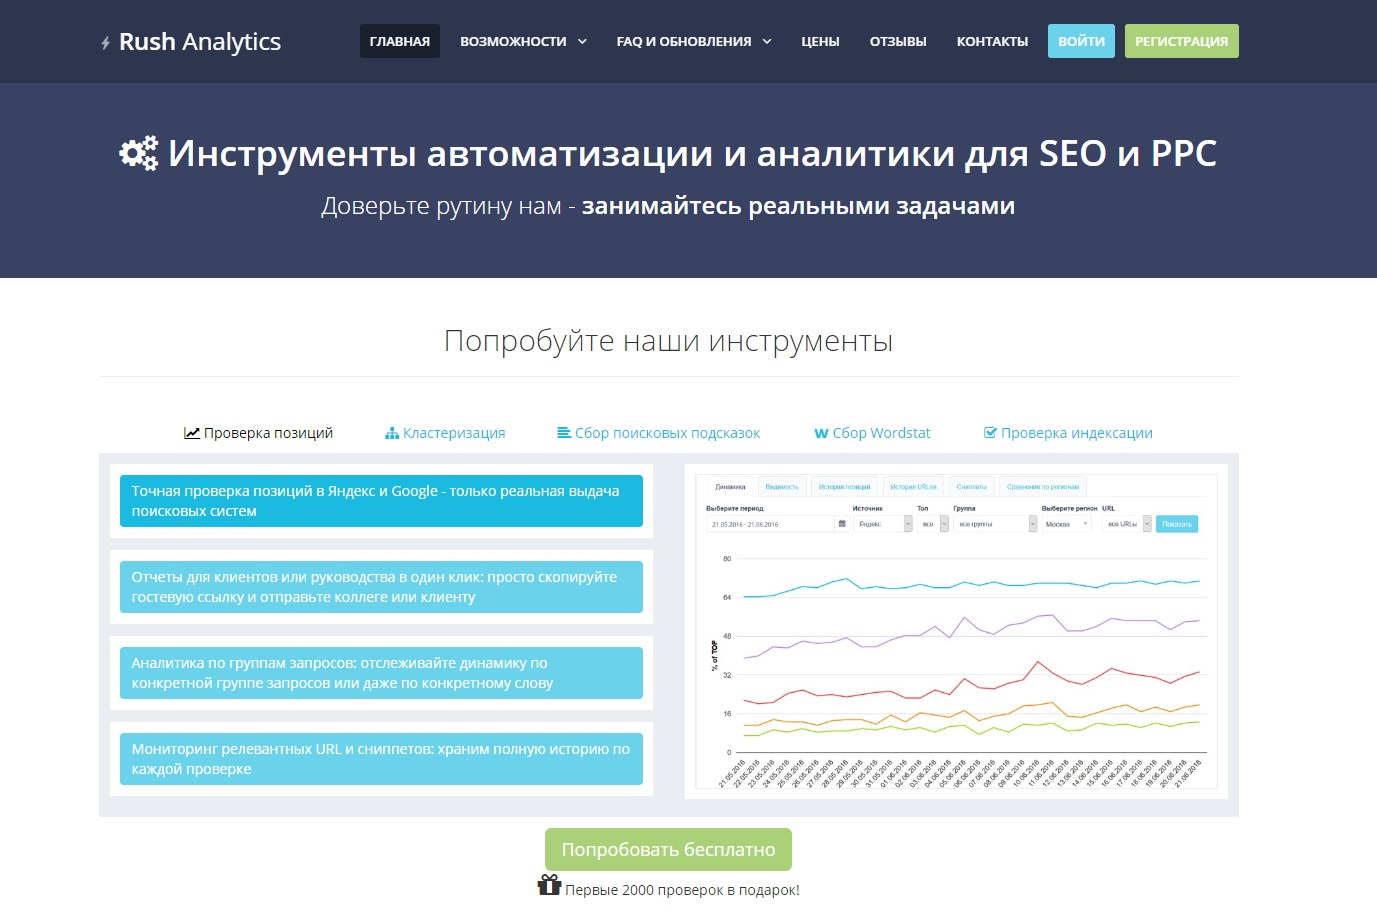 Сервис Rush Analytics